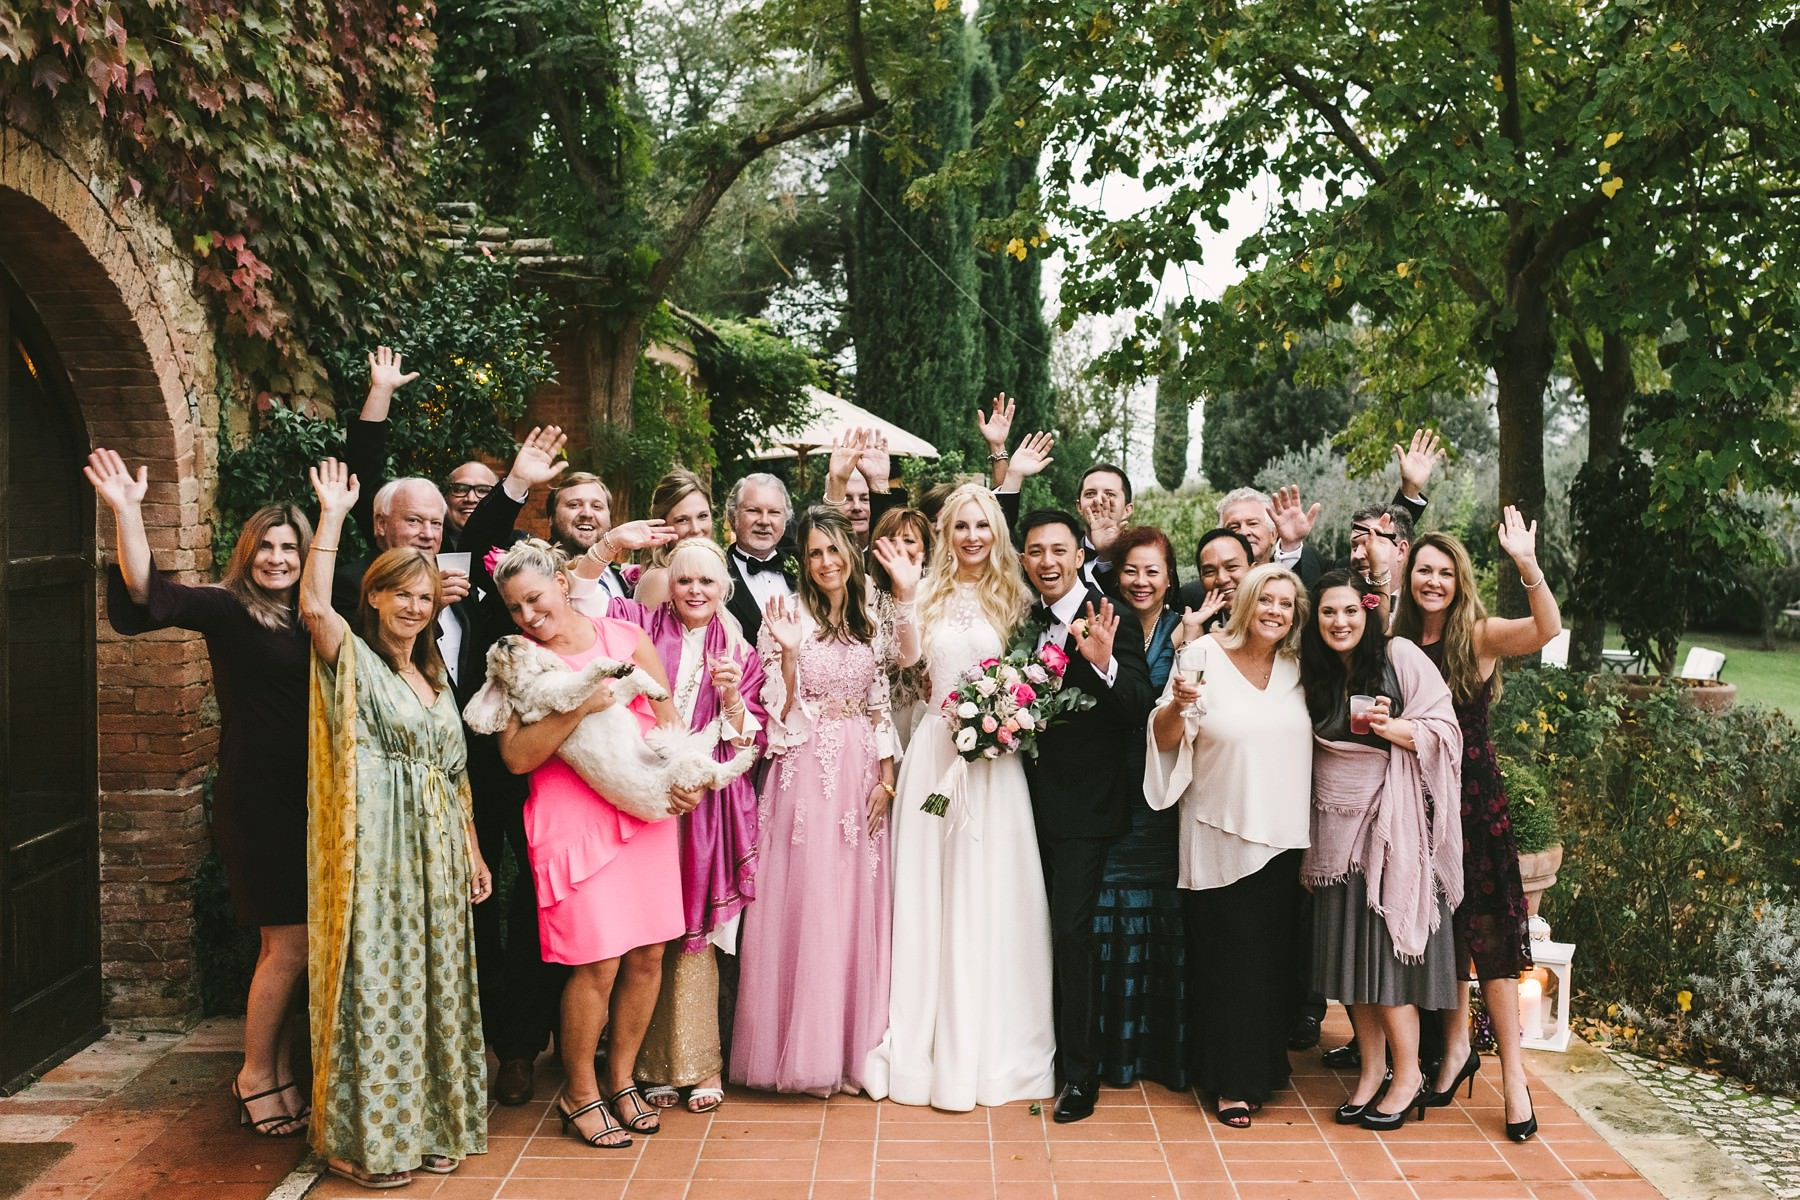 Group photo with bride and groom. Intimate destination wedding in Tuscany